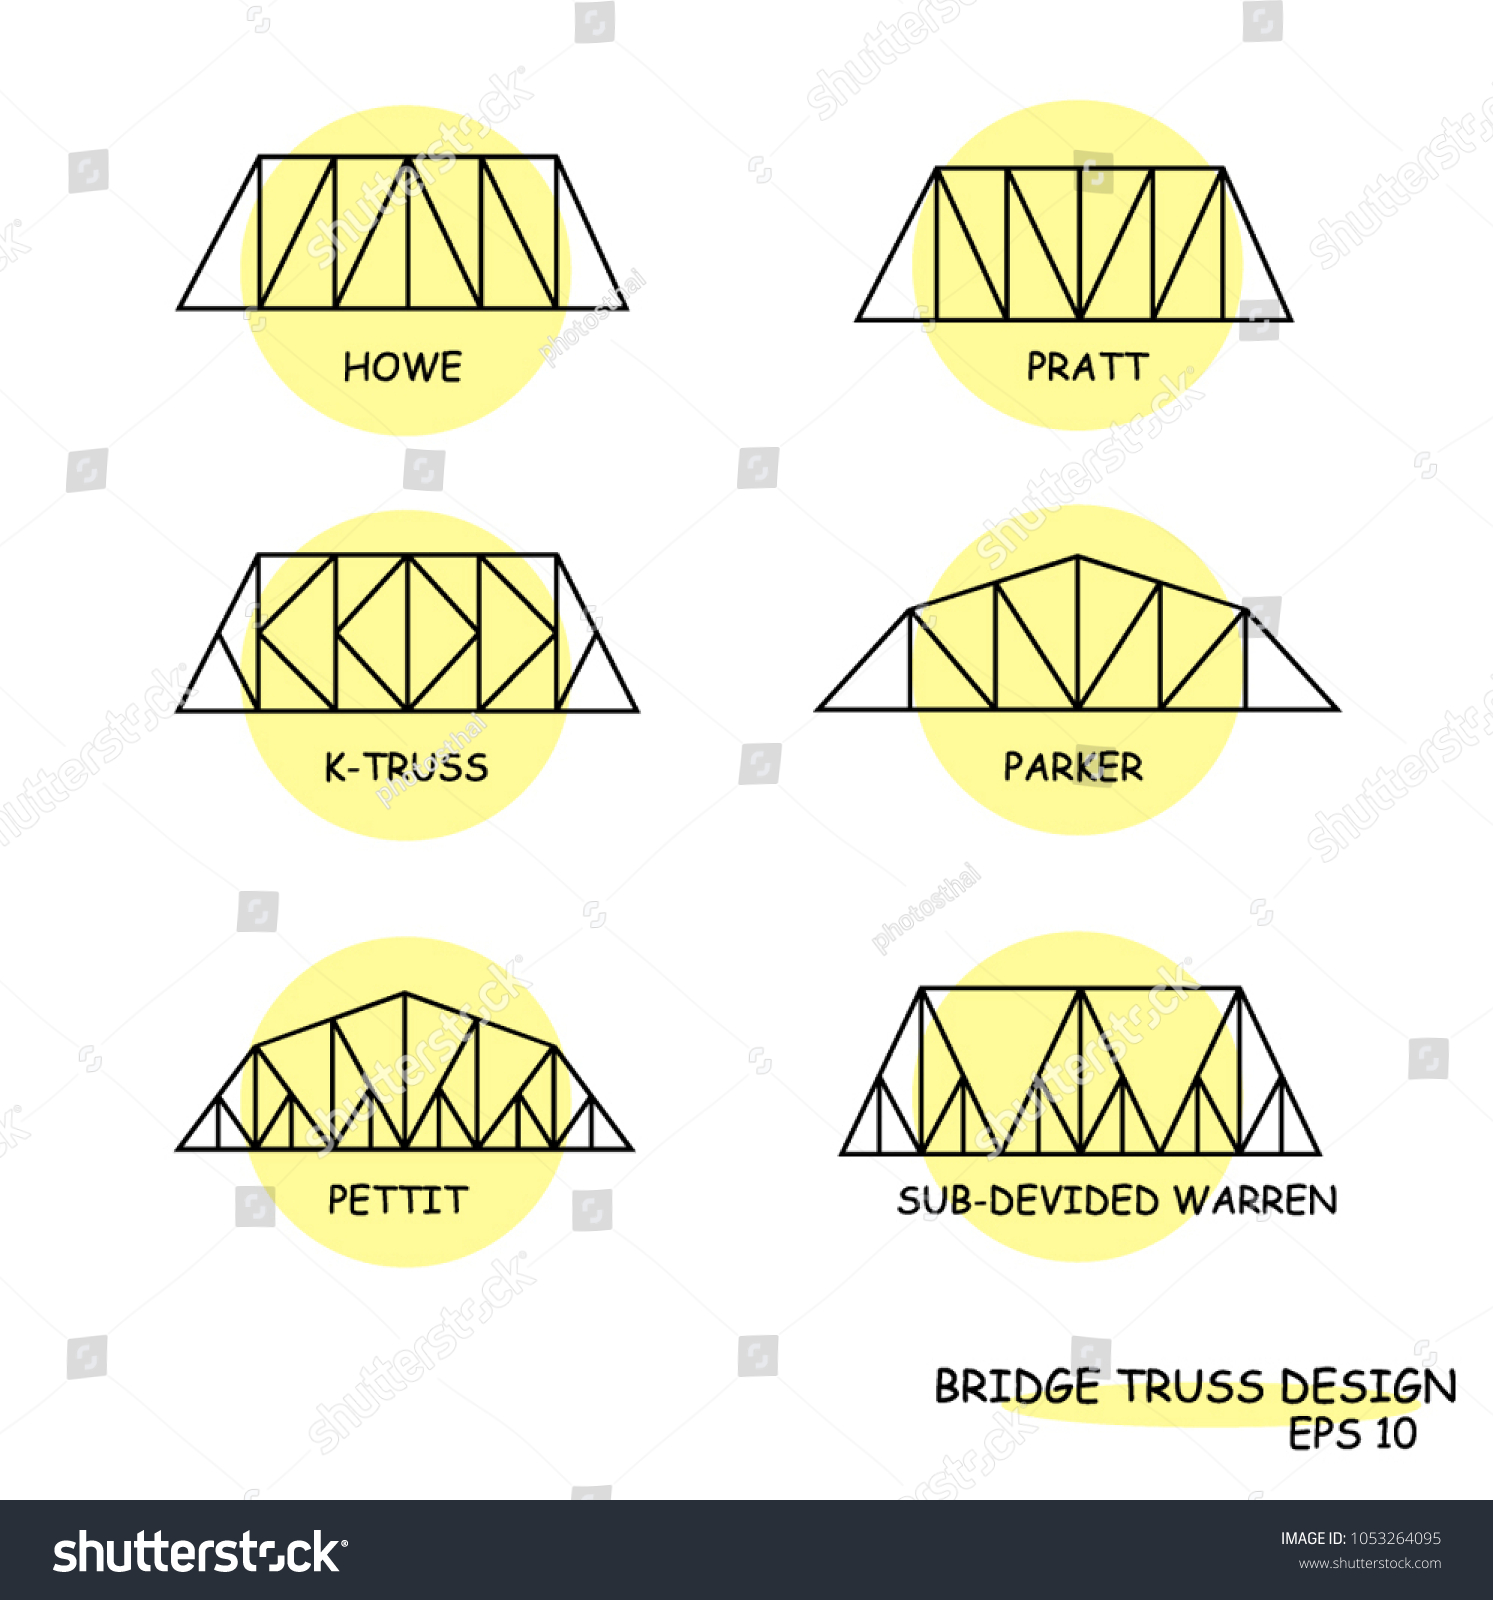 Bridge Truss Set Design Vector Illustration Stock Royalty Diagram Through